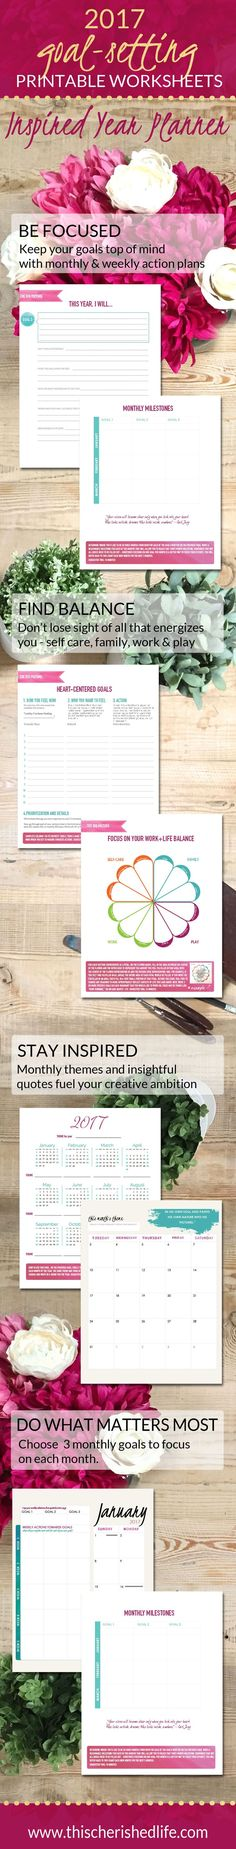 PRINTABLE 2017 goal setting worksheets - Set goals that matter for work life balance especially for busy moms setting goals, goal setting #goals #planner #2017